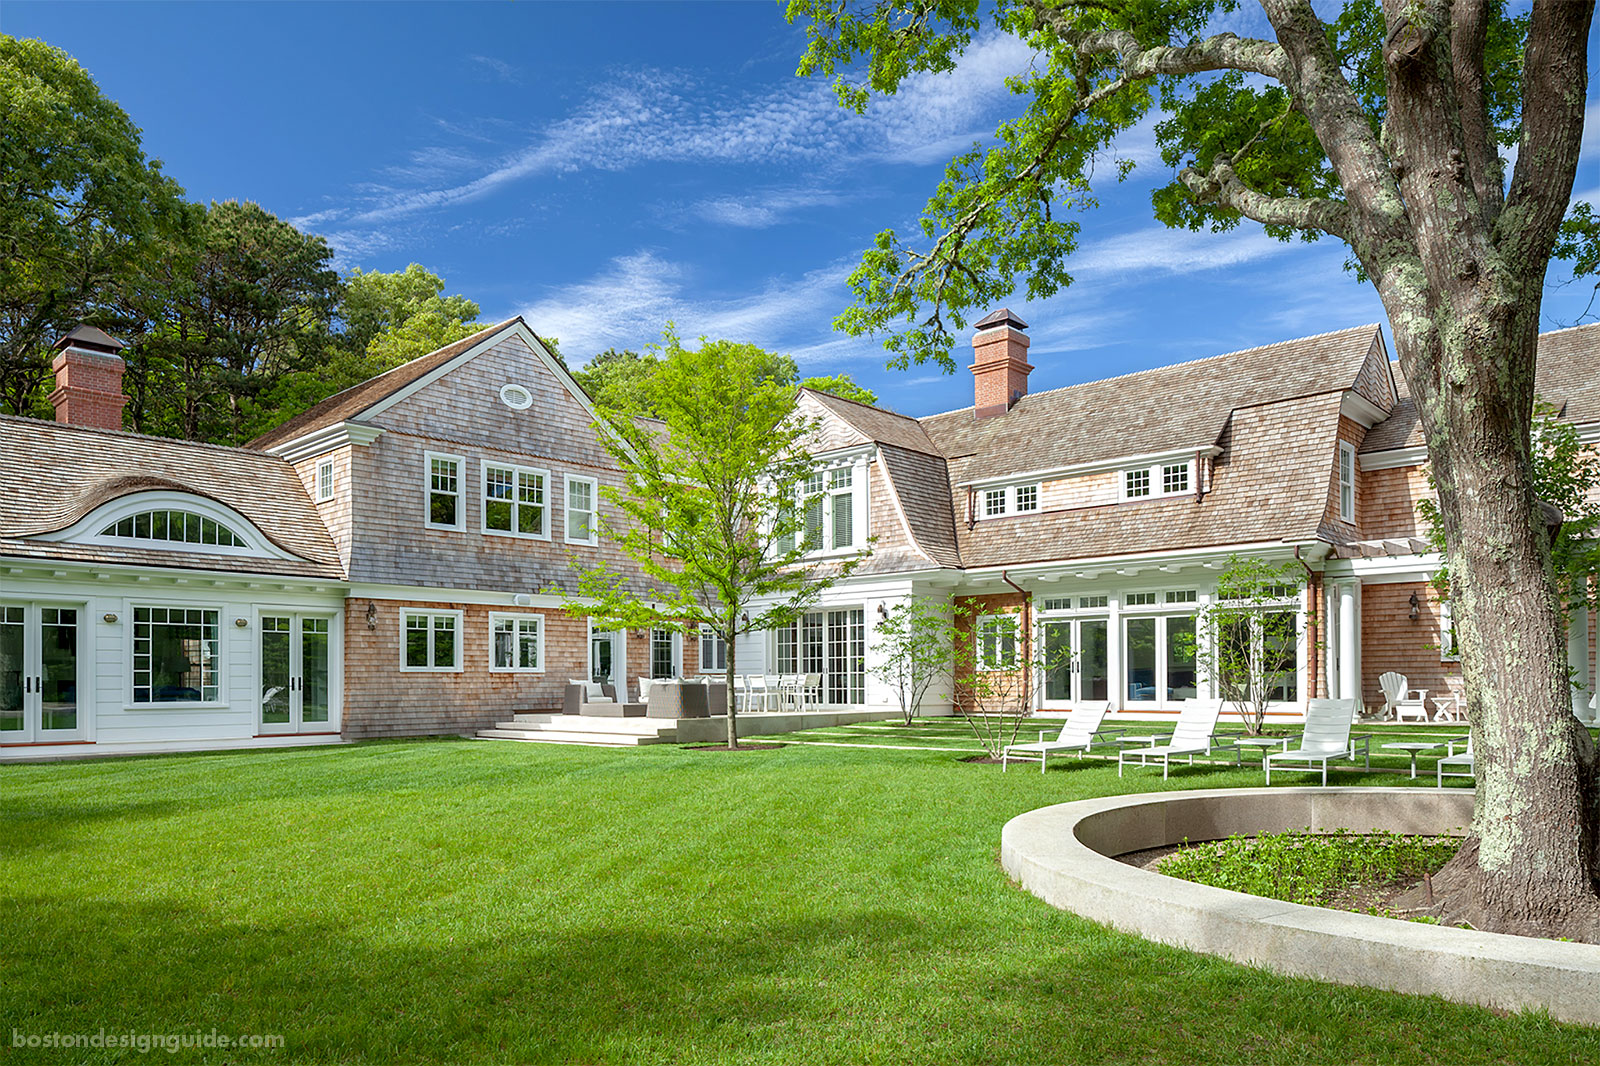 Gambrel Shingle Style Cape home designed by Catalano Architects and constructed by Travis Cundiff Associates, Inc.